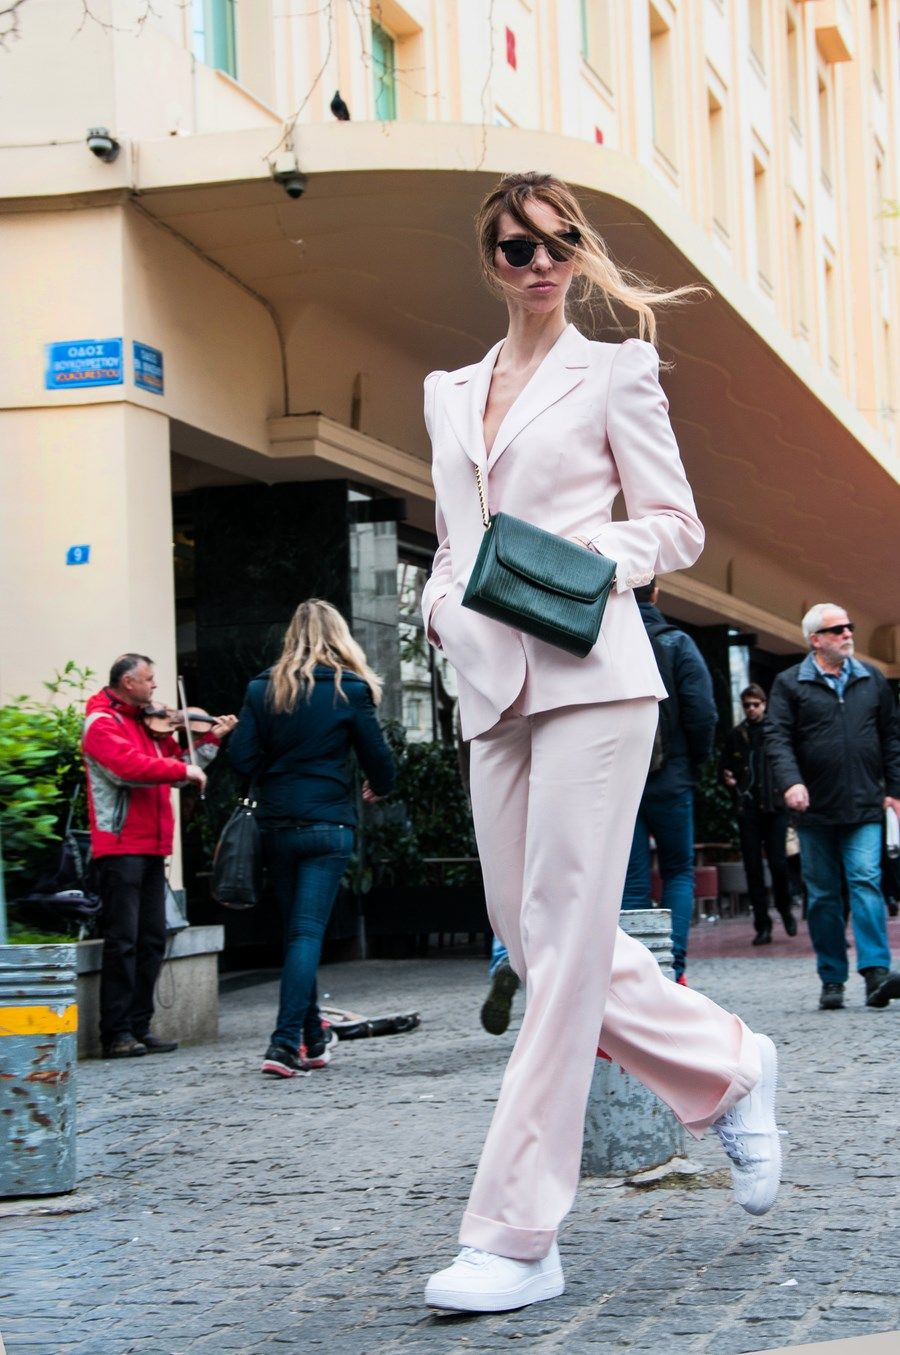 #streetstyle #muserebelle #chloe #suit #pink #spring #fashion #mr